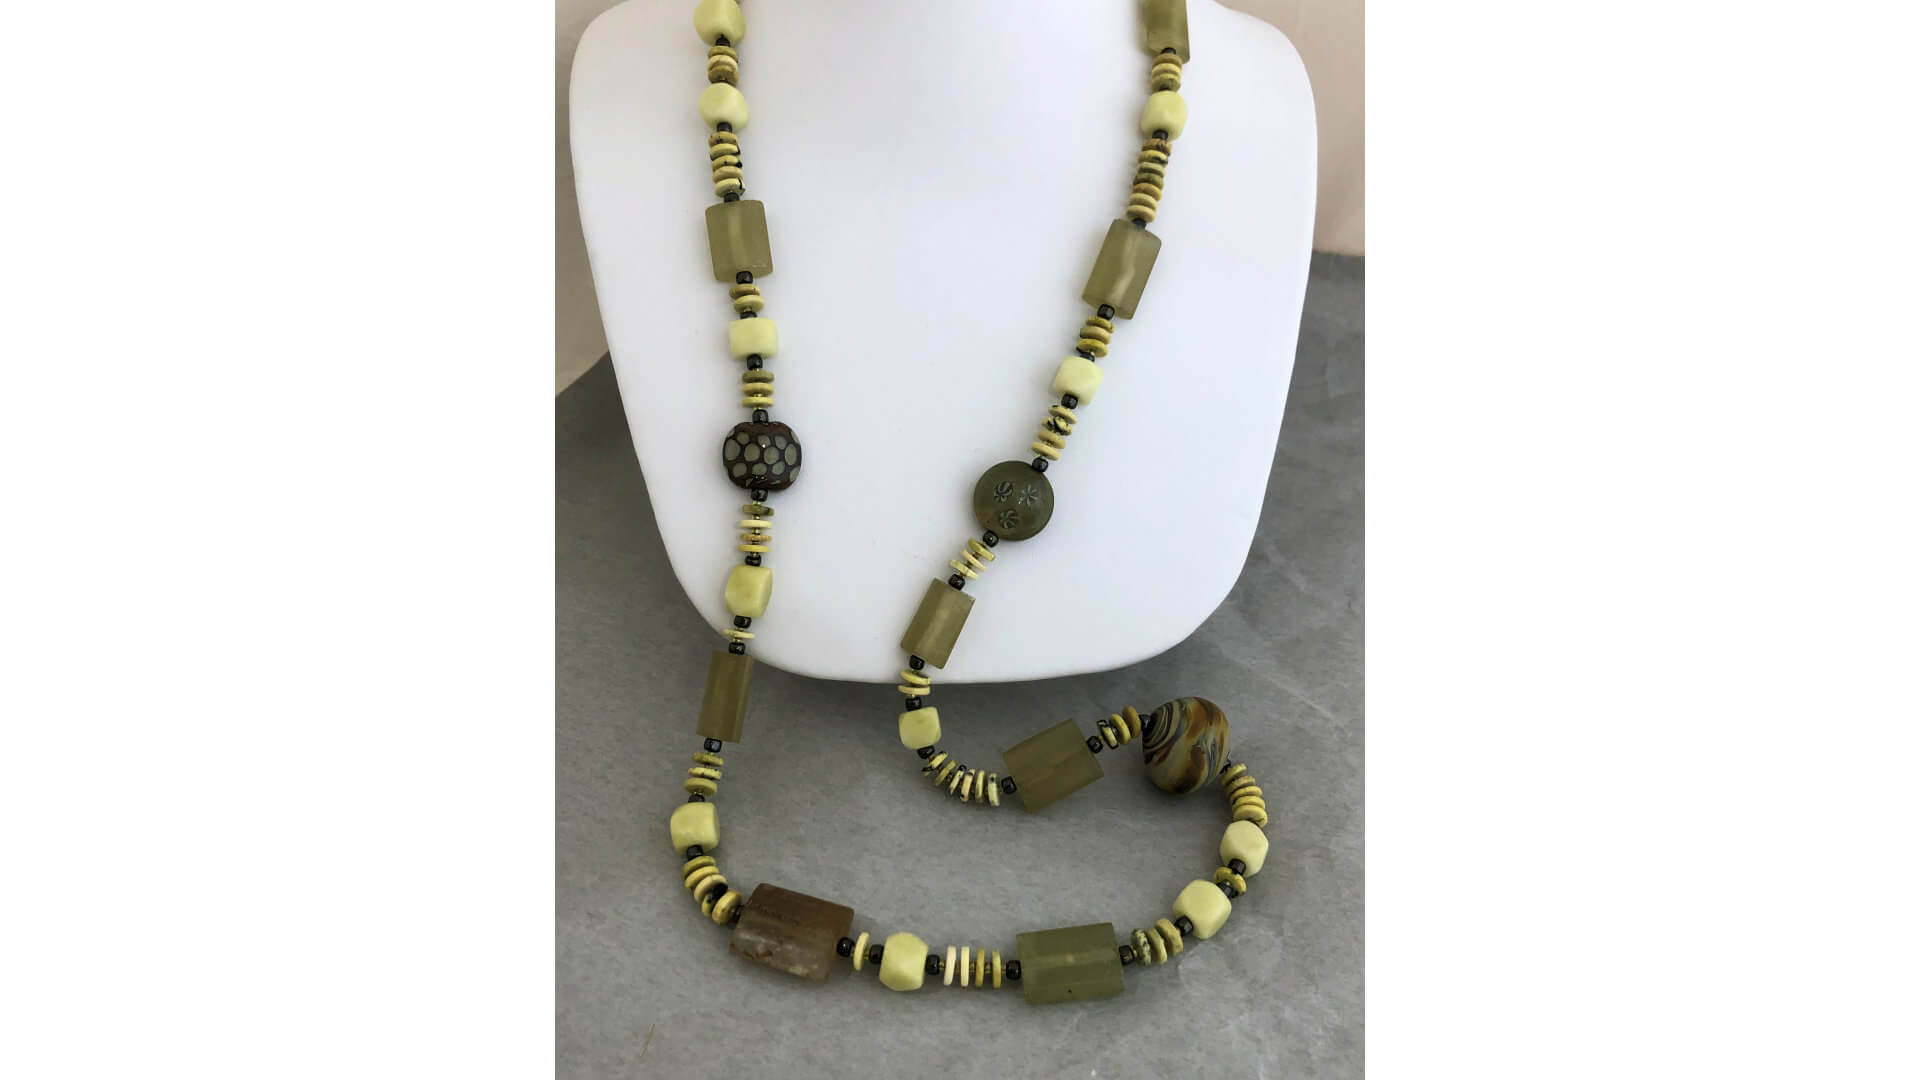 Olive and Lemon Beaded Necklace by Susan Hazer Designs